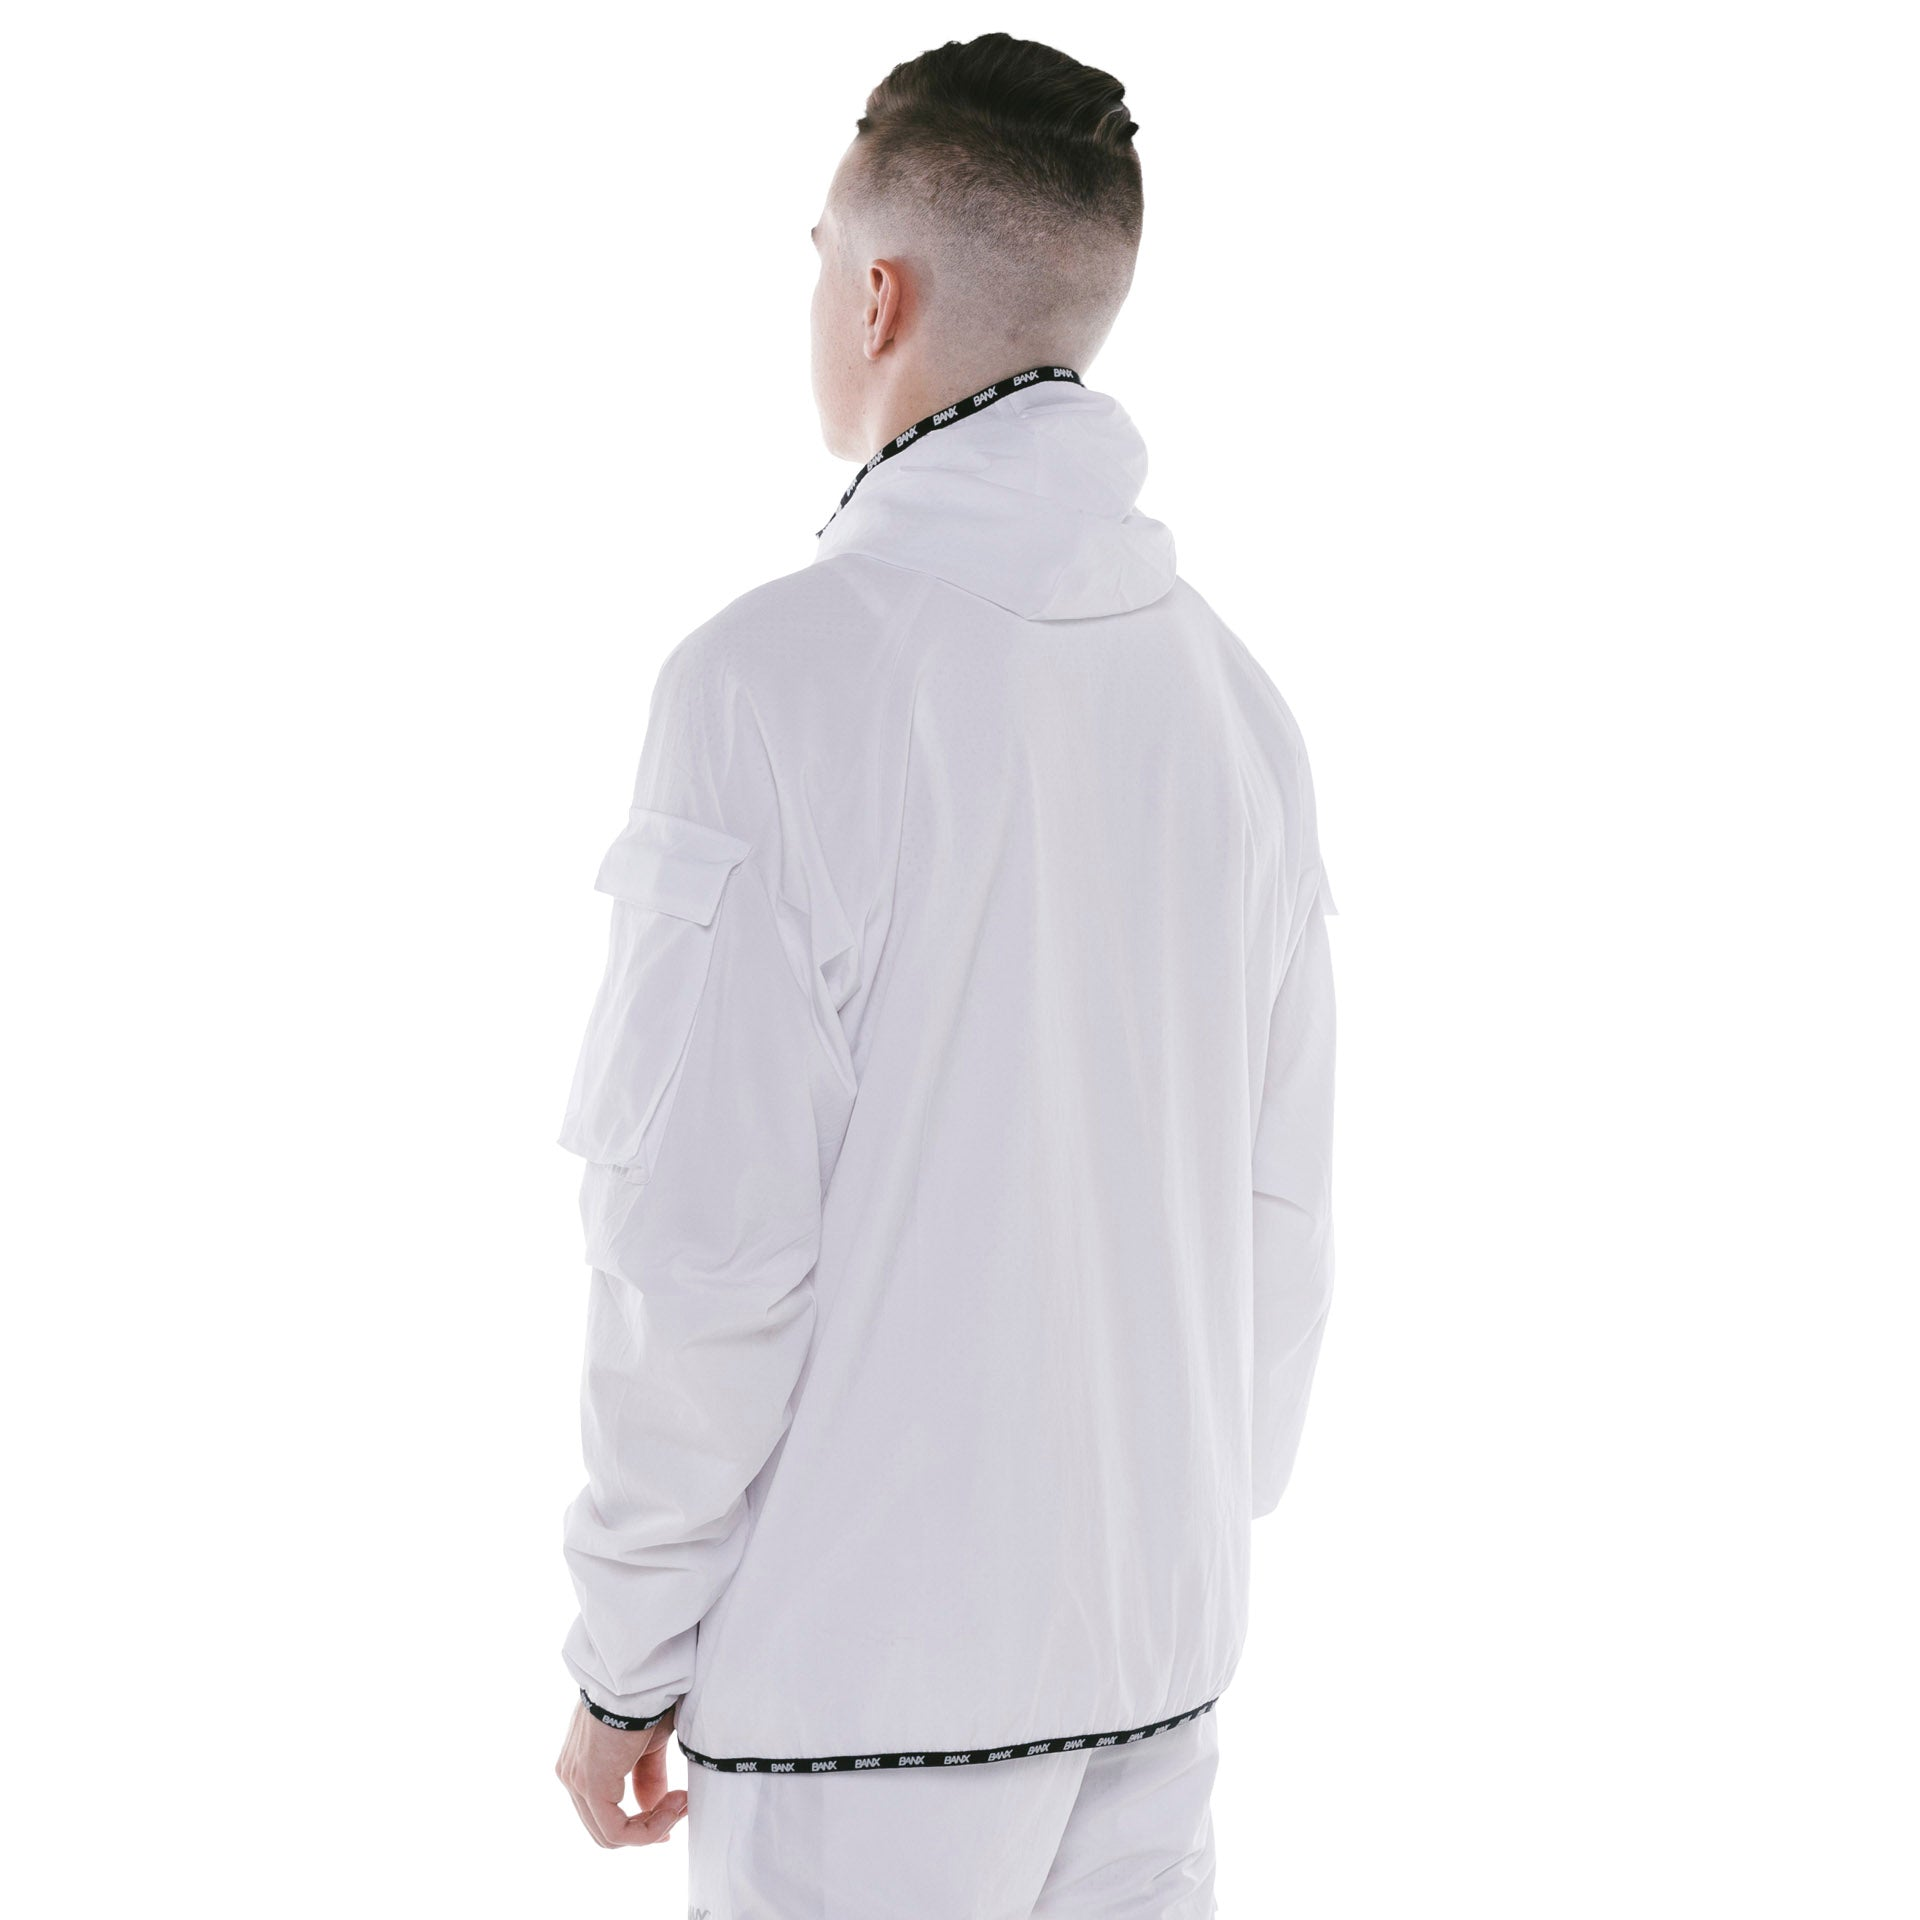 TRACKJACKET - WHITE (REVERSIBLE)